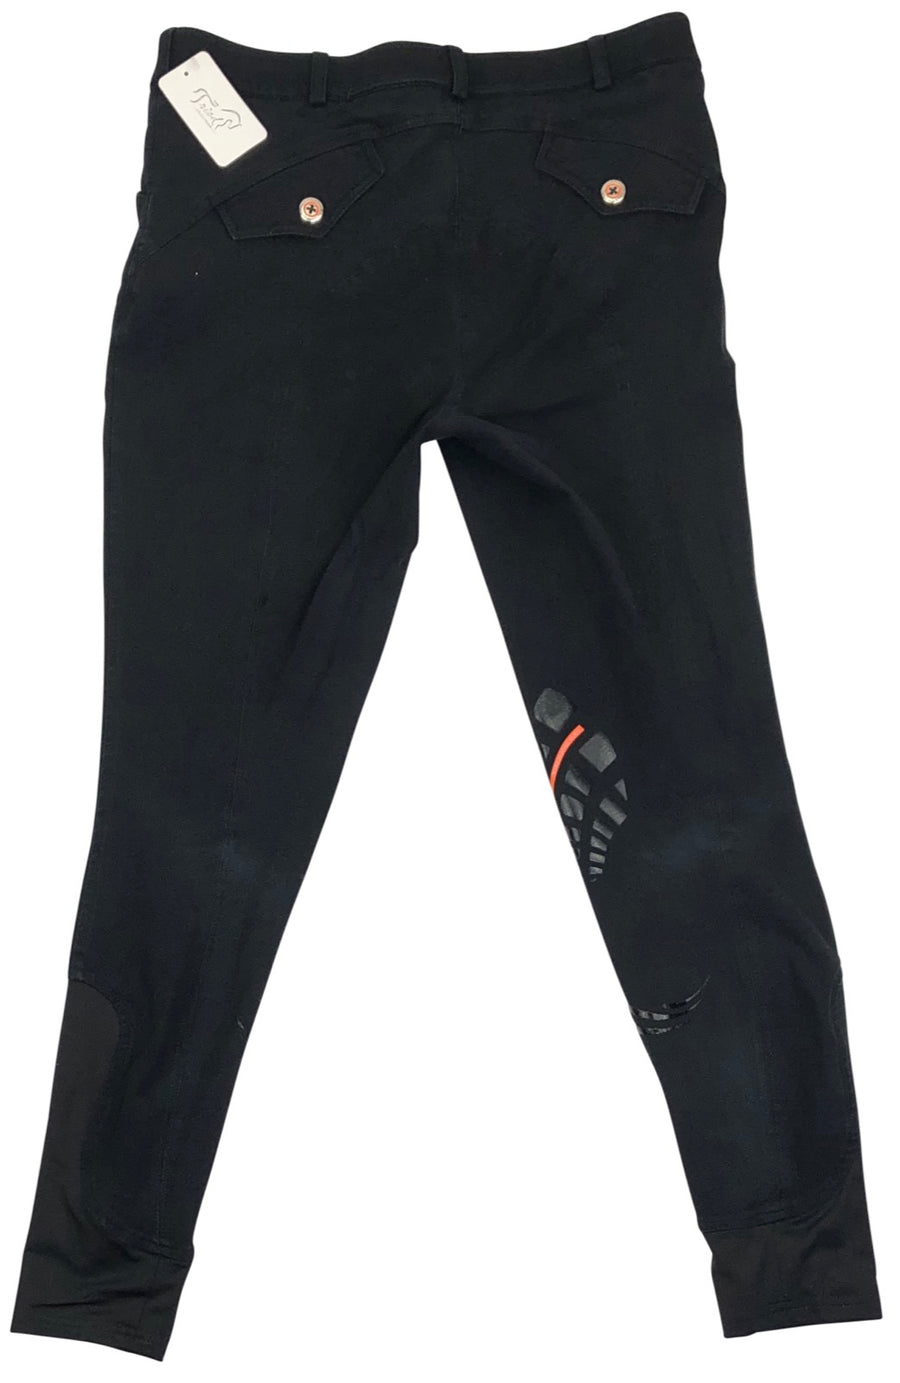 Back of Schockemohle Libra Grip Breeches in Black